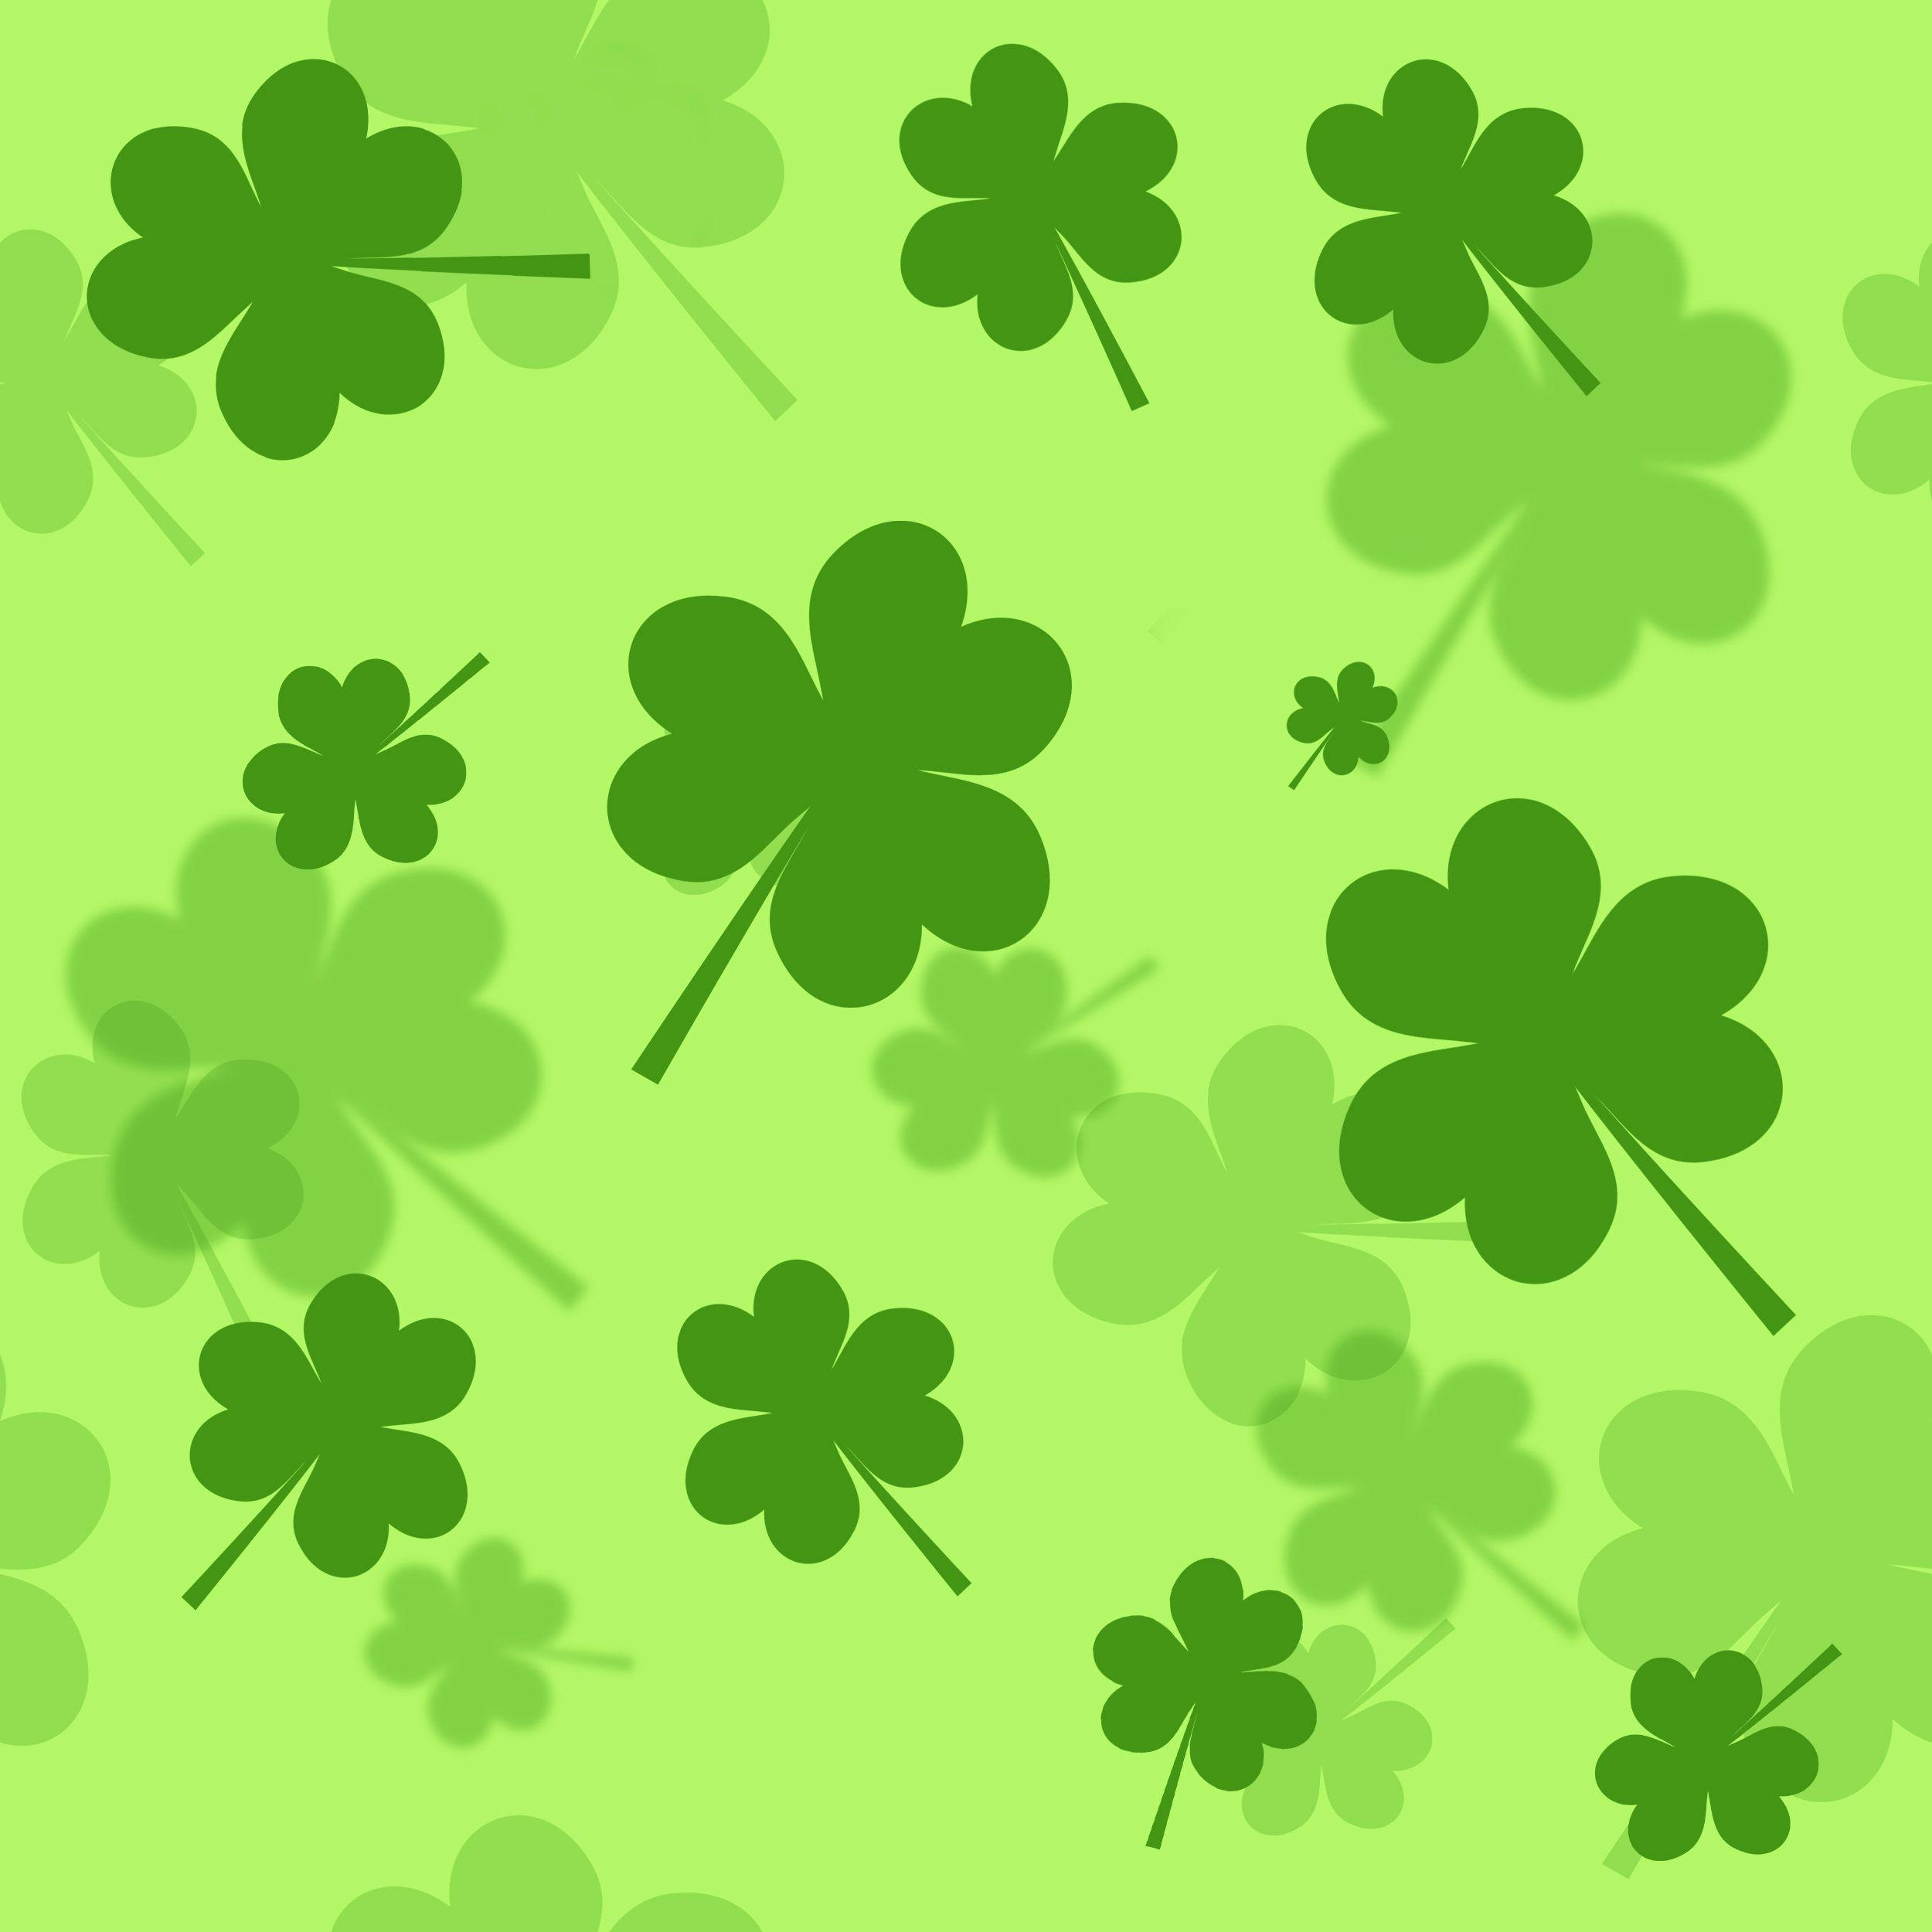 1000+ images about Shamrock on Pinterest | Saint patrick's day ...